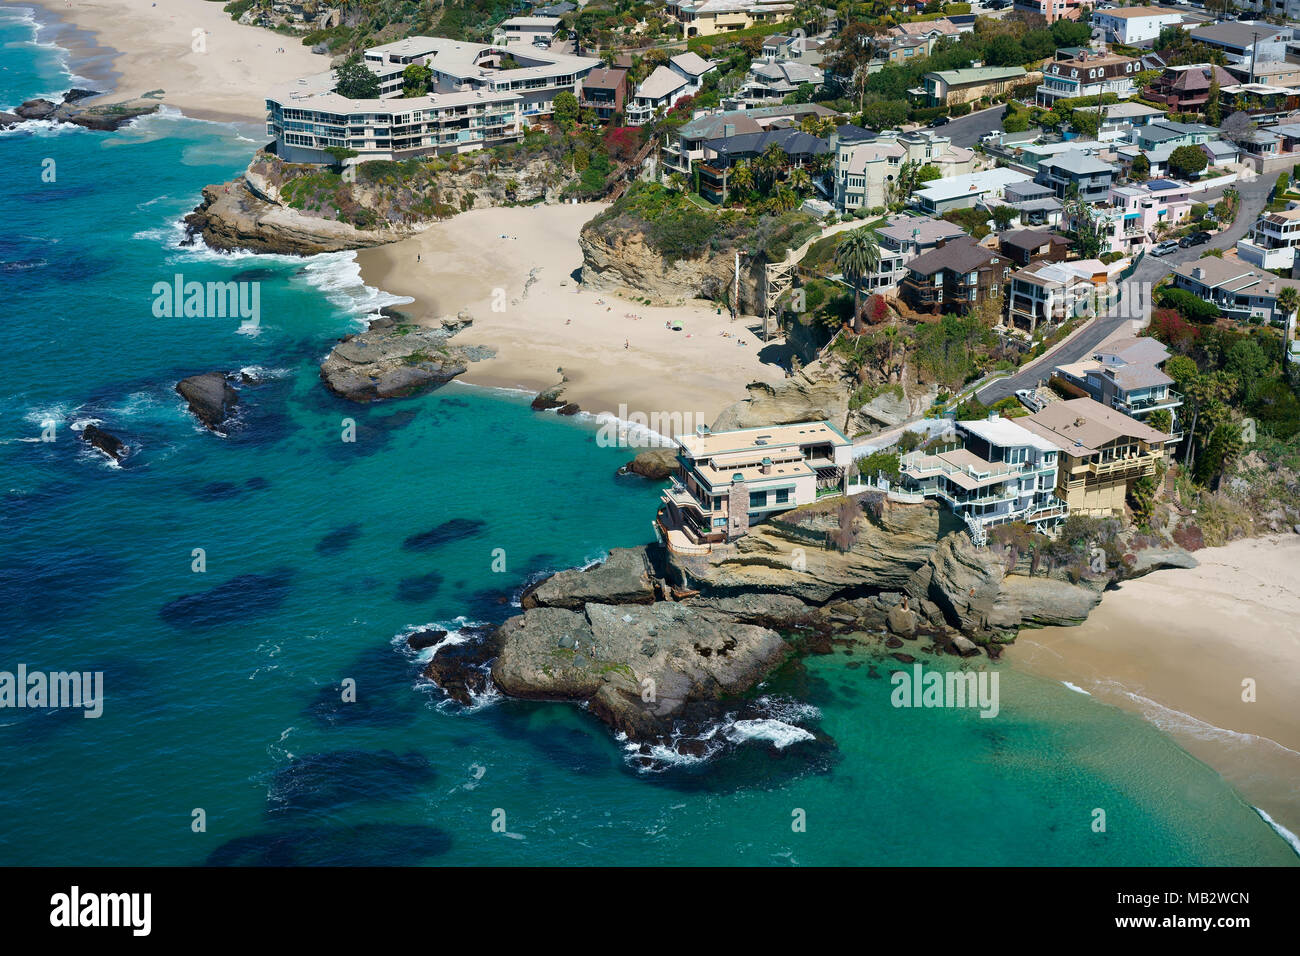 cliff dwellings around table rock beach aerial view laguna beach rh alamy com table rock beach laguna directions table rock beach laguna